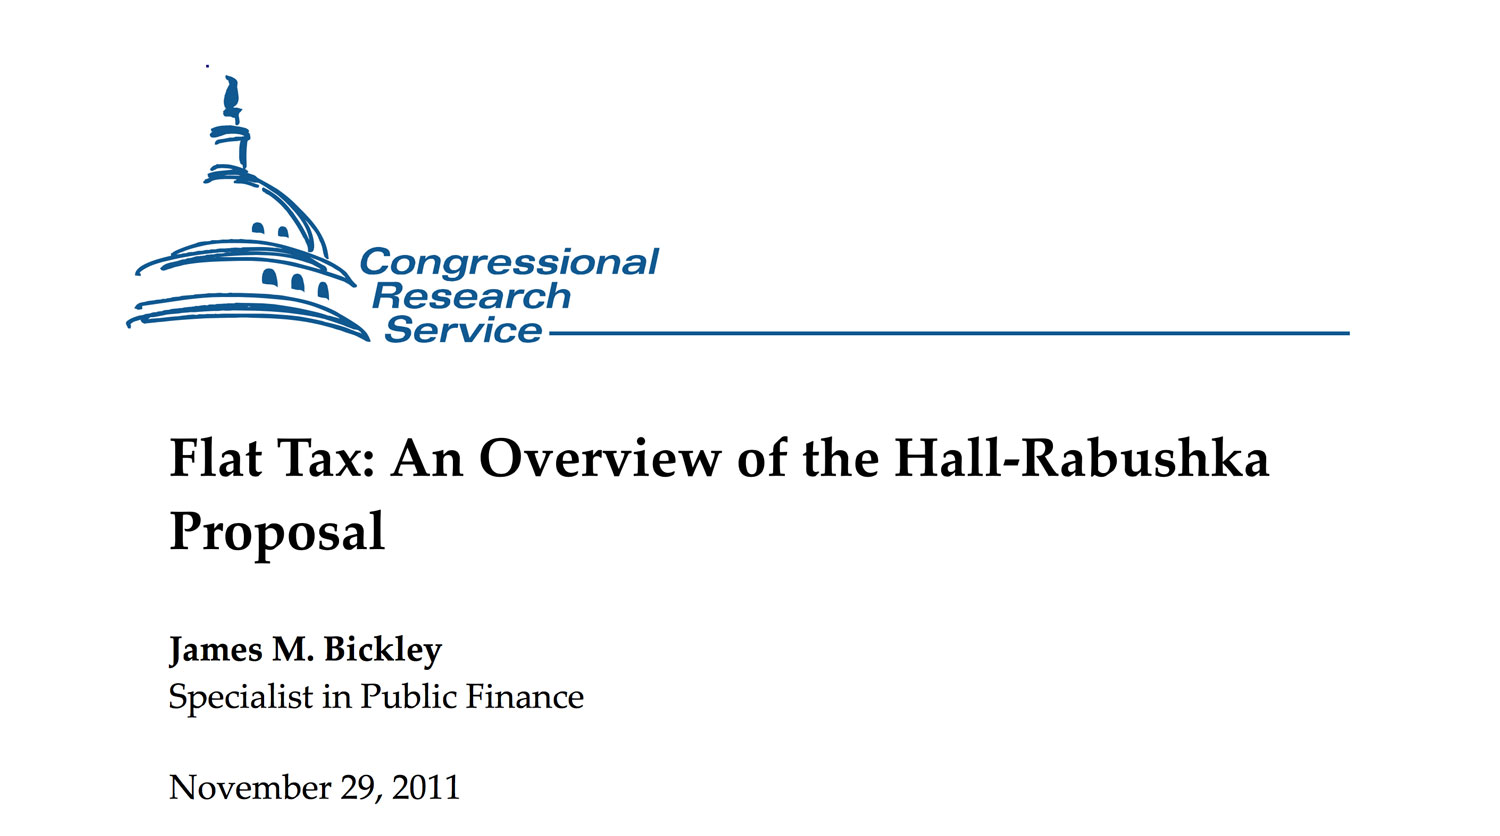 Congressional Research Service, Flat Tax: An Overview of the Hall-Rabushka Proposal